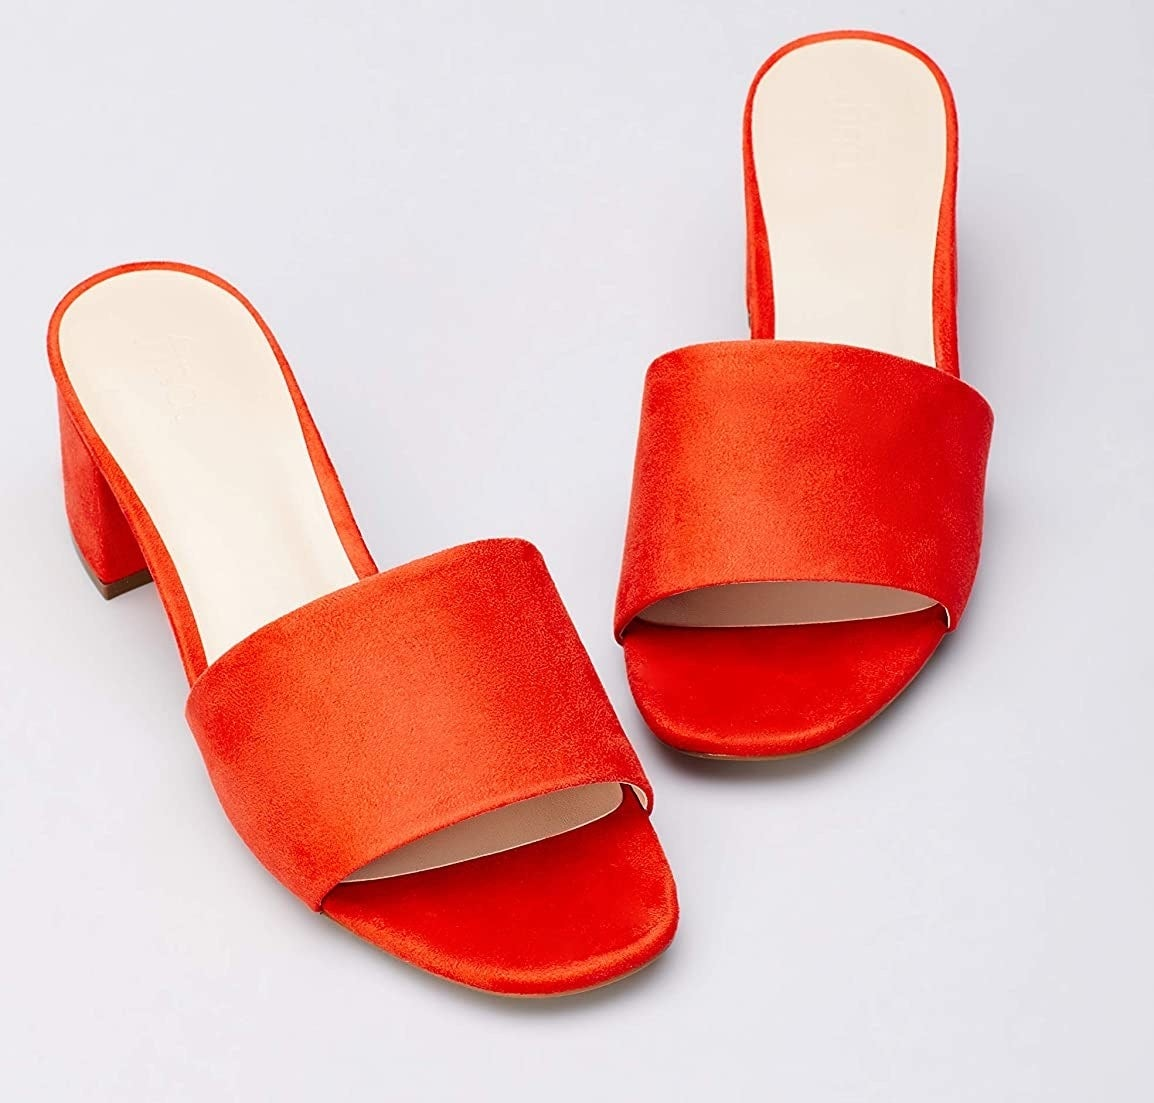 the open-toe sandals in bright red